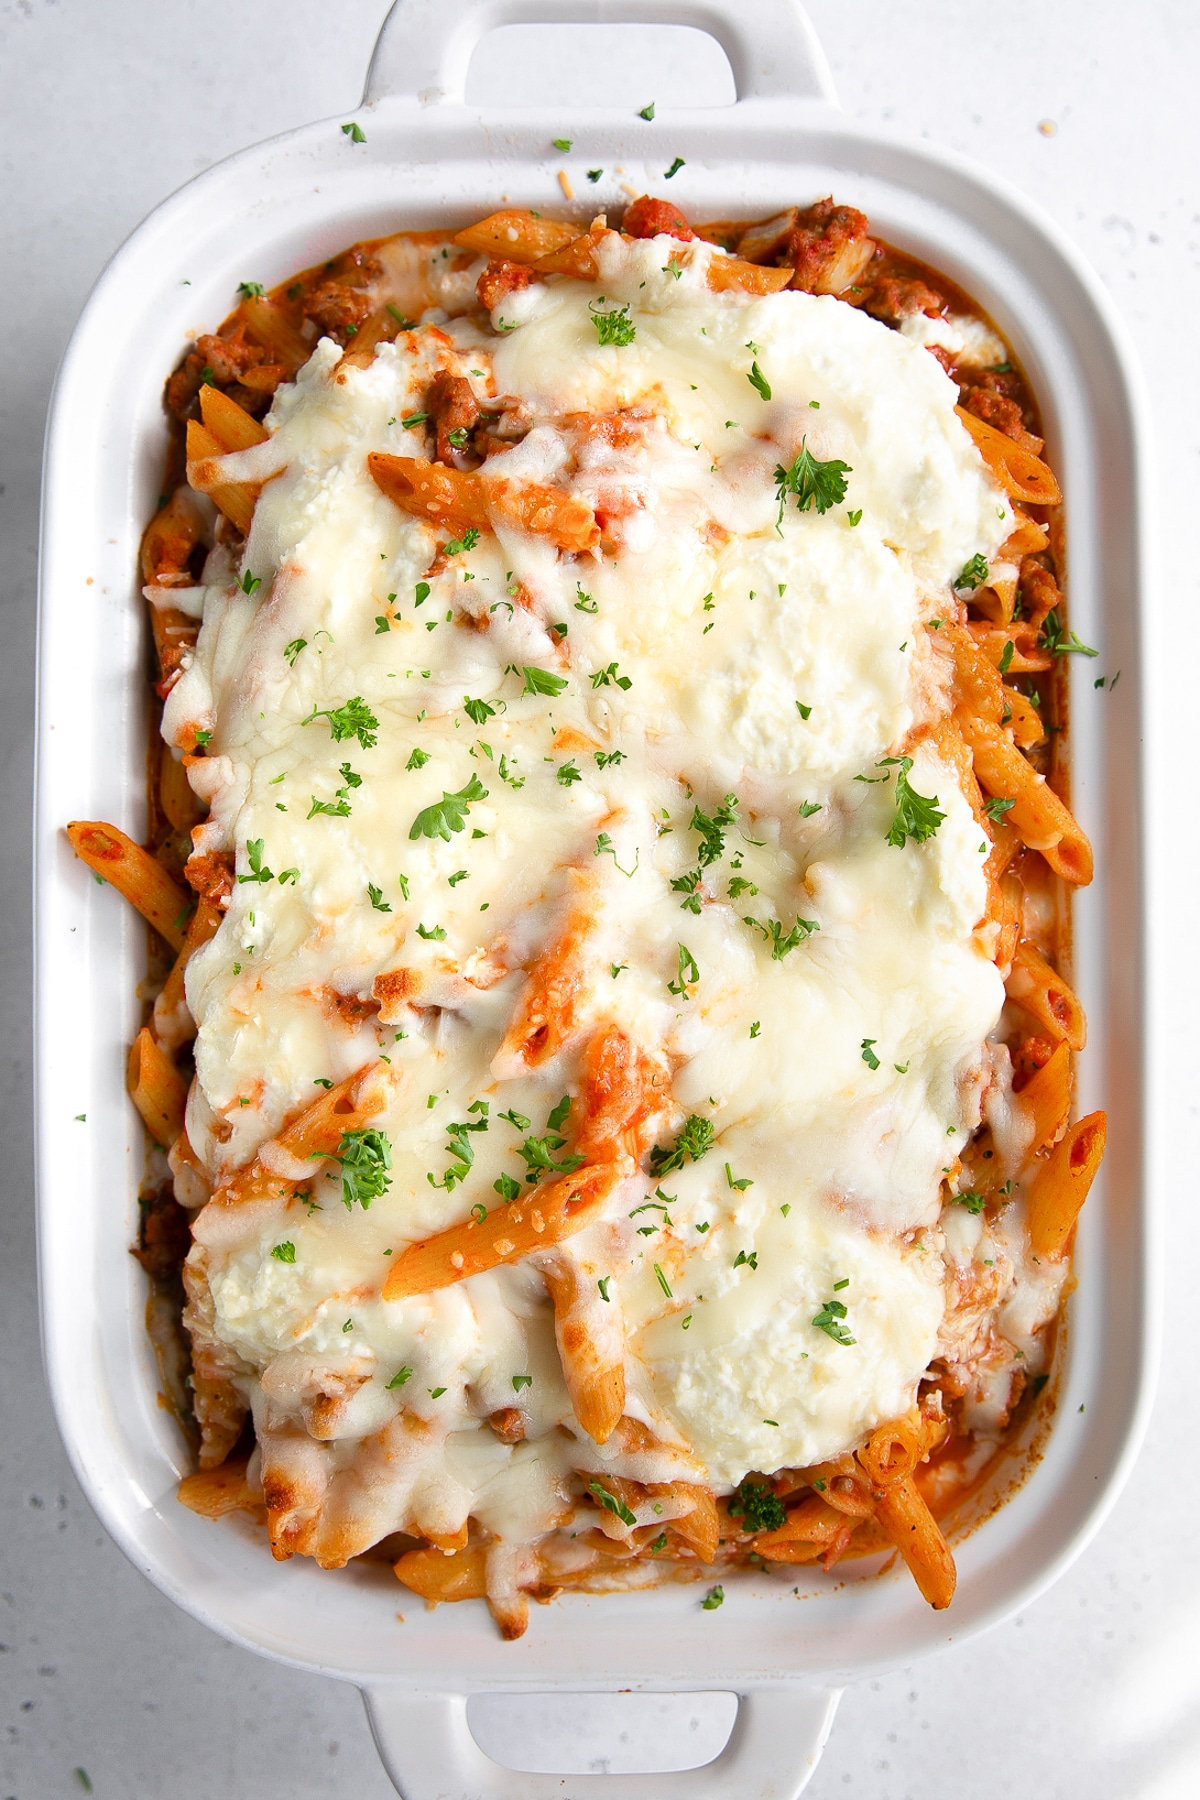 Large white baking dish filled with cheese covered and baked mostaccioli cooked in an Italian sausage and tomato pasta sauce.